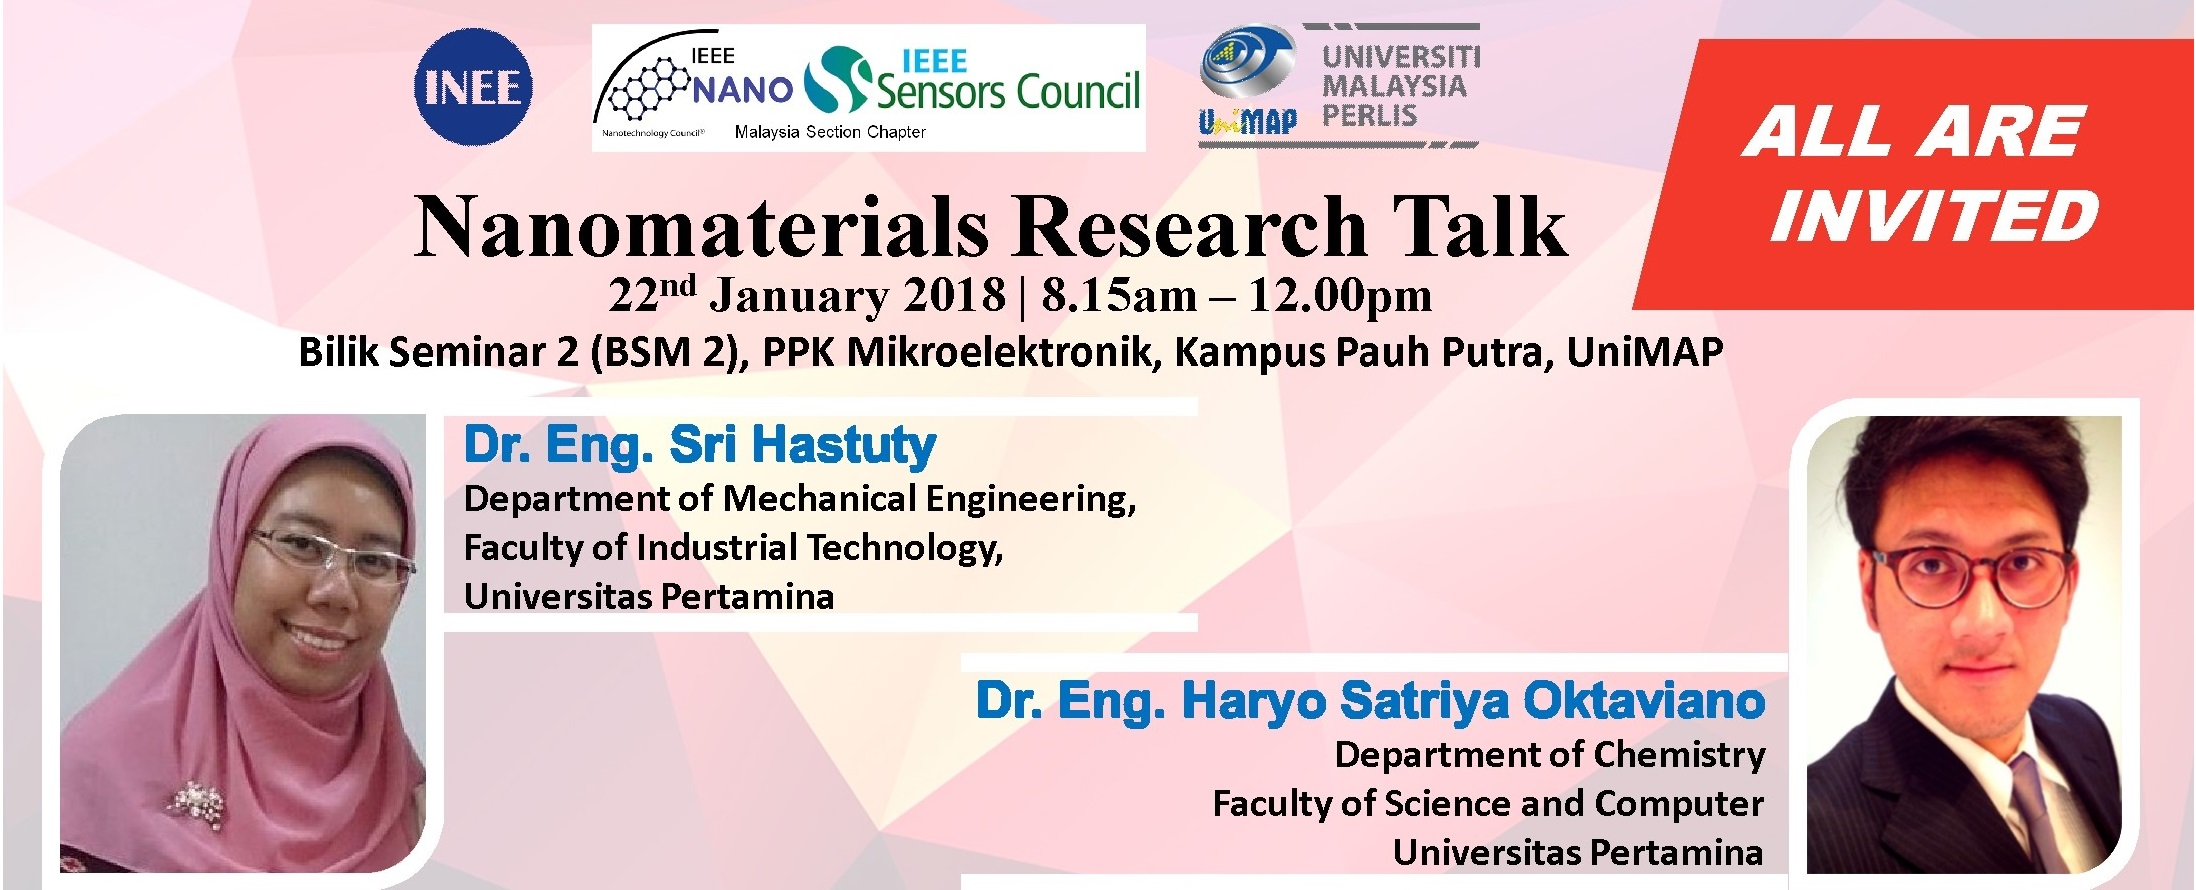 NANOMATERIALS RESEARCH TALK